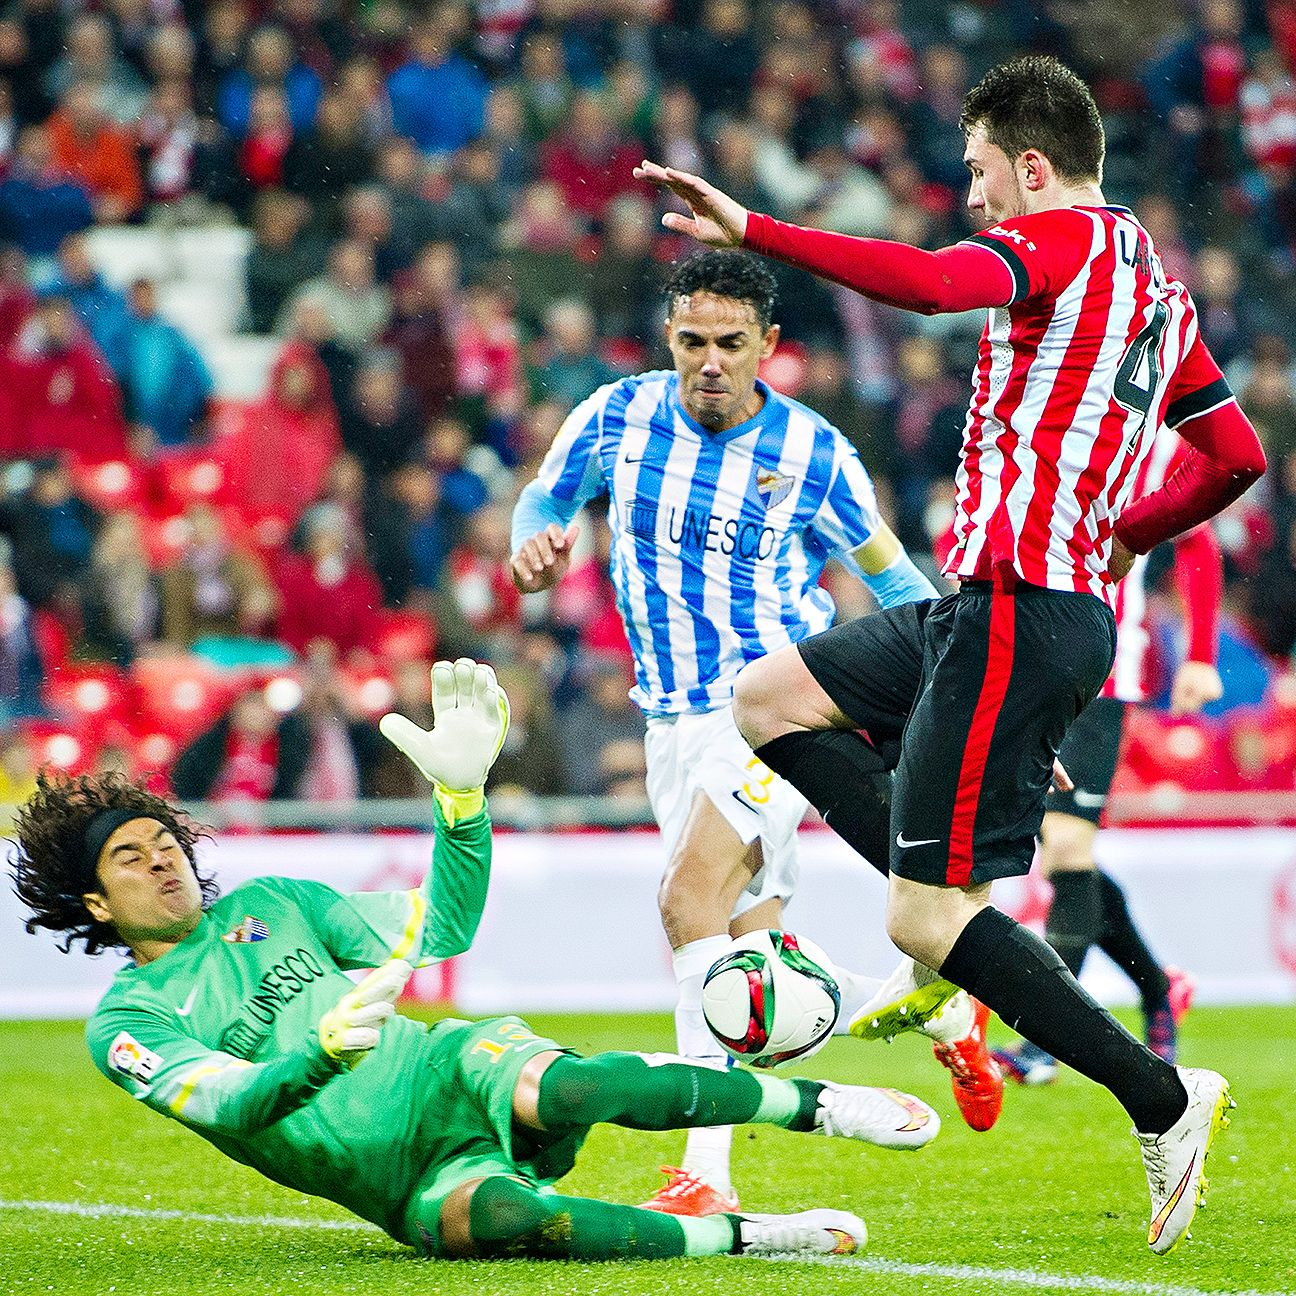 With Malaga's cup campaign concluded, minutes will be hard to come by for Guillermo Ochoa.